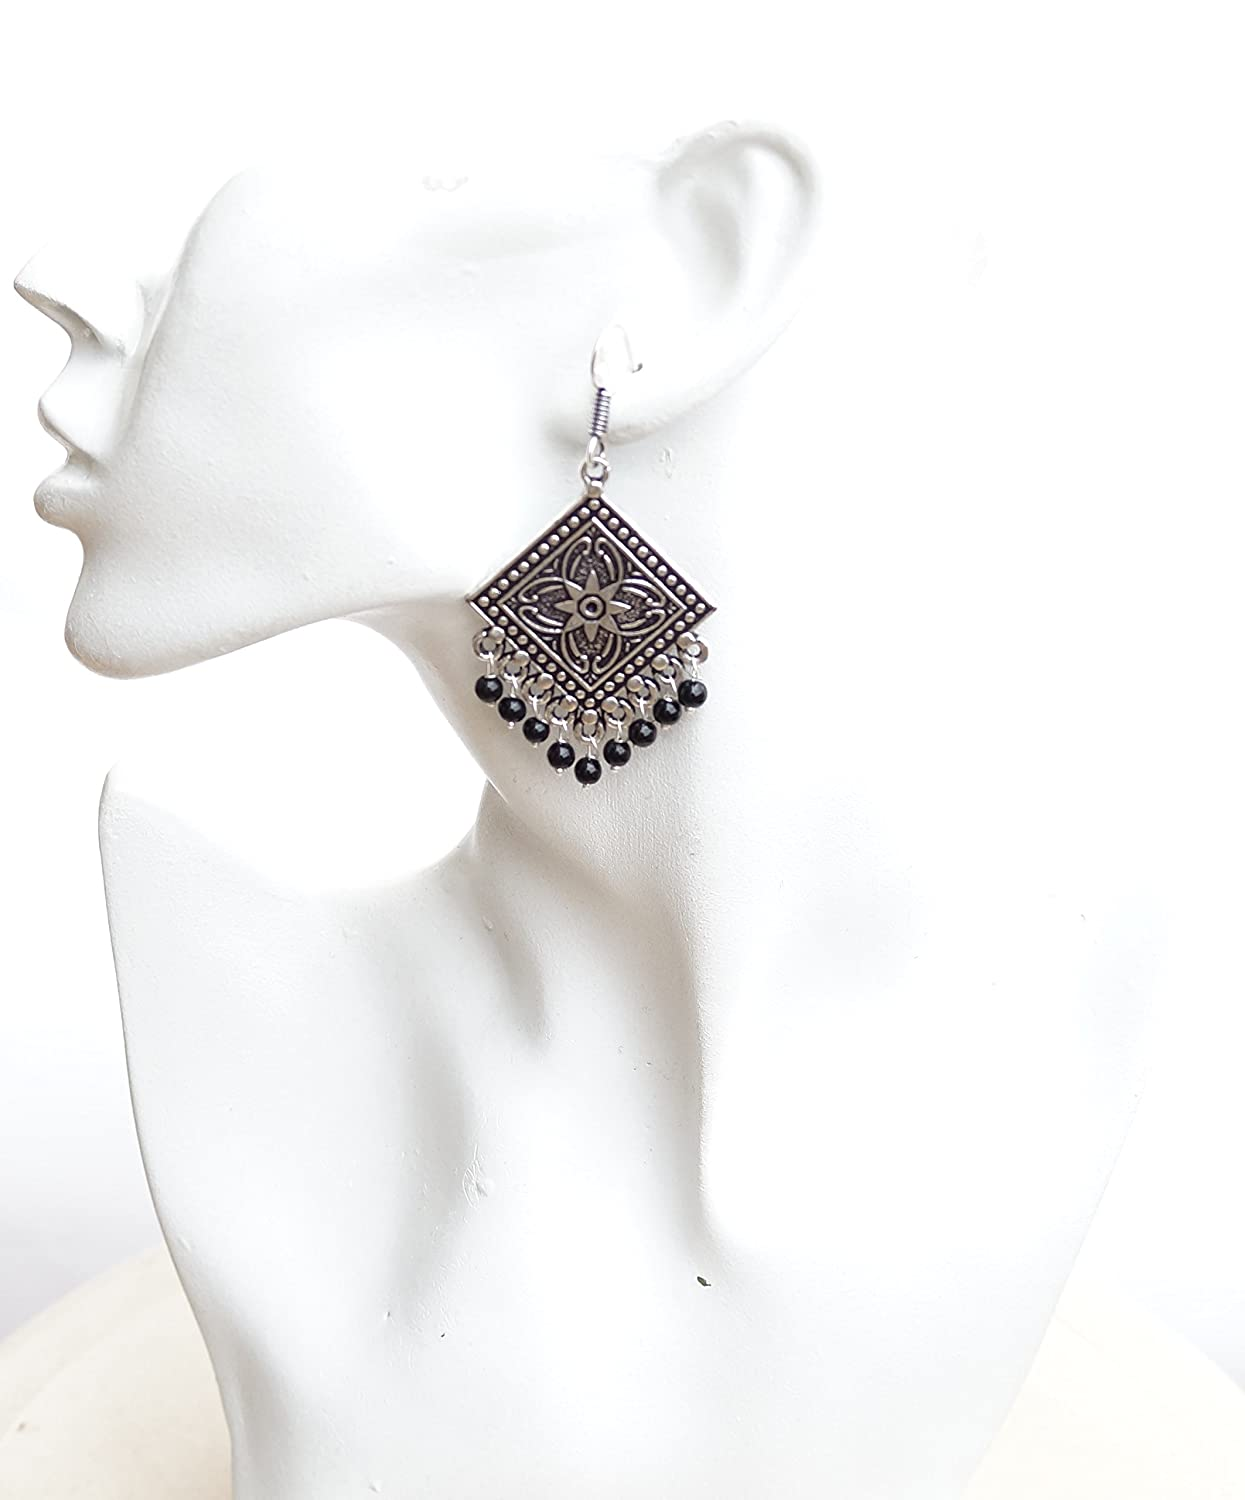 Sansar India Boho Square Drop Gypsy Oxidised Handmade Indian Indian Earrings Jewelry for Girls and Women